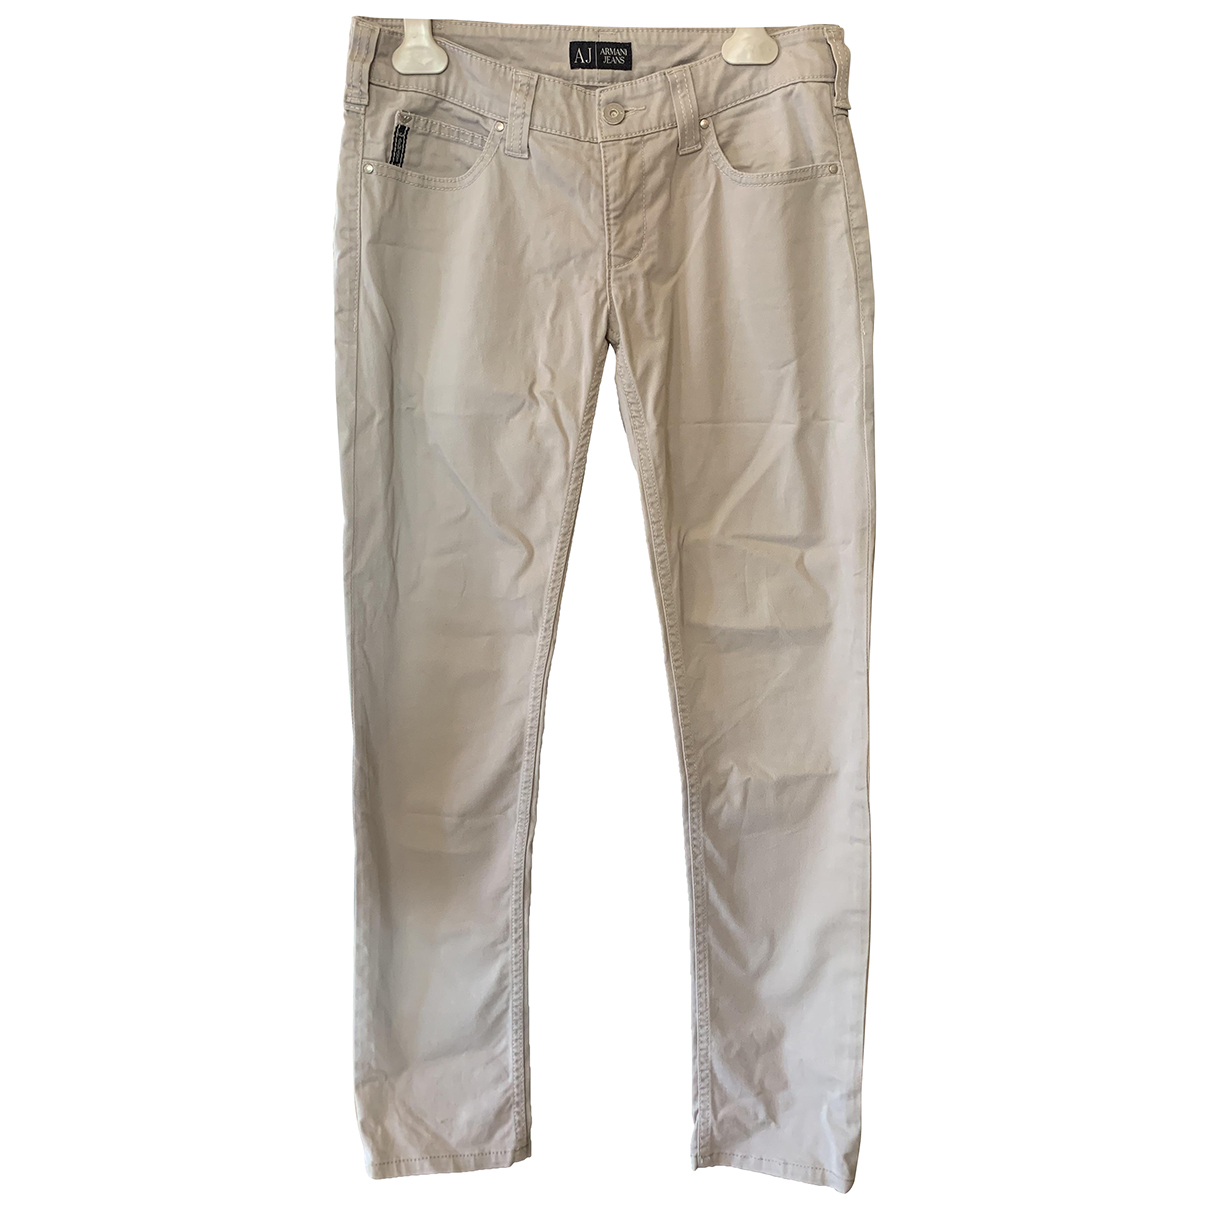 Armani Jeans N Grey Cotton Trousers for Women 40 IT